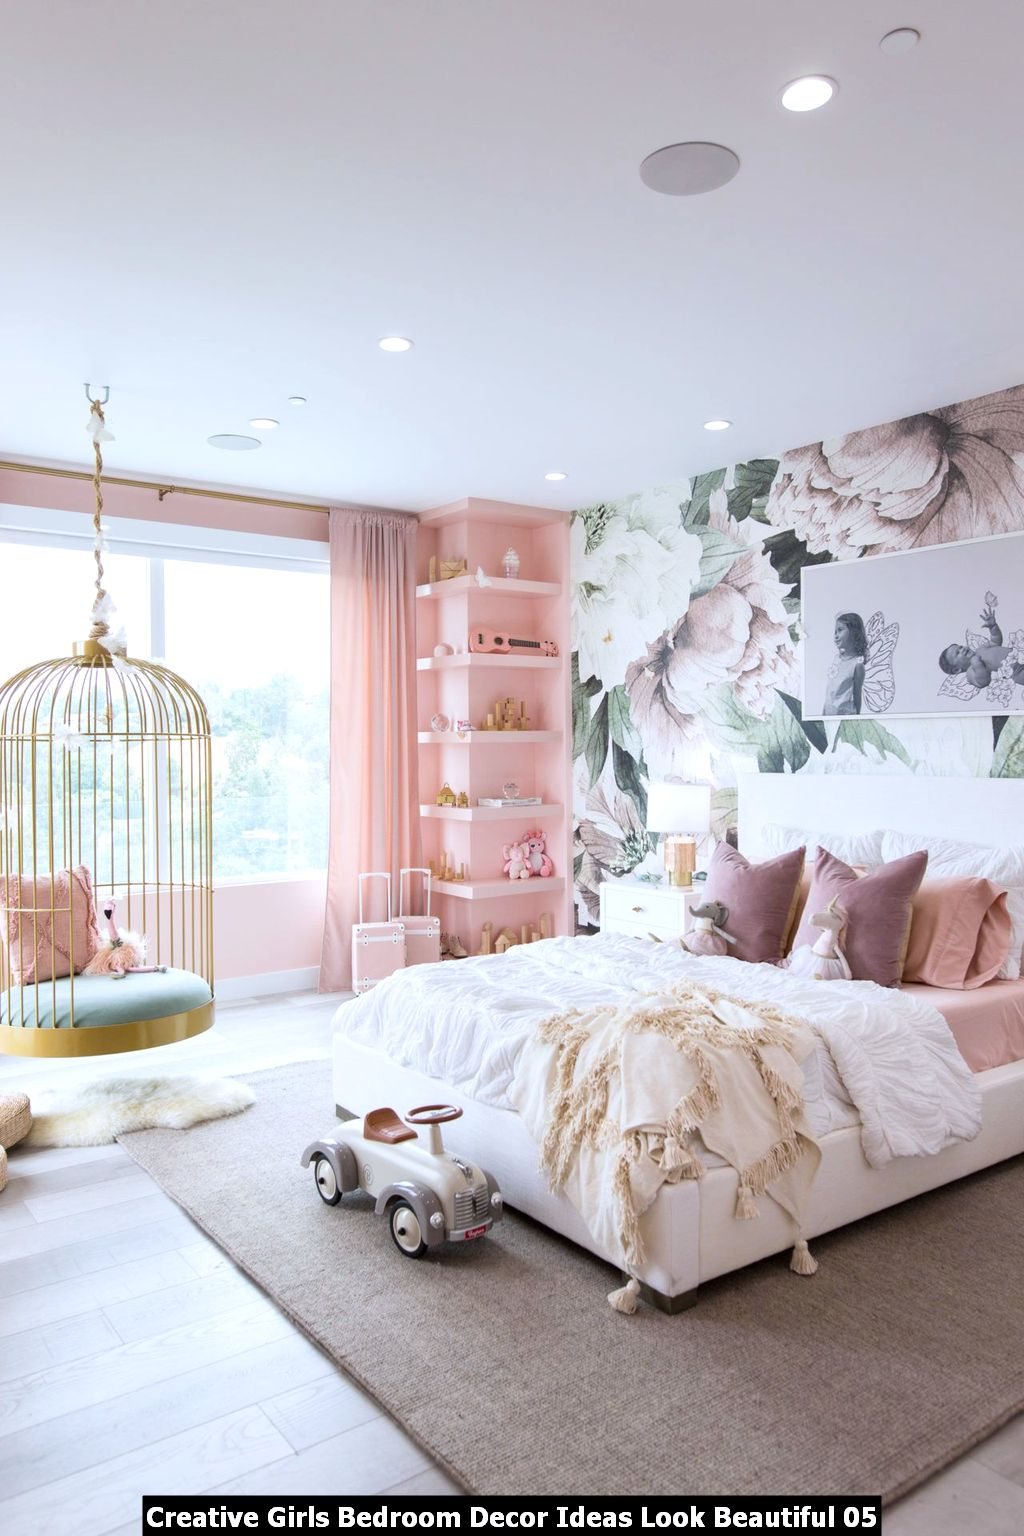 Creative Girls Bedroom Decor Ideas Look Beautiful 05